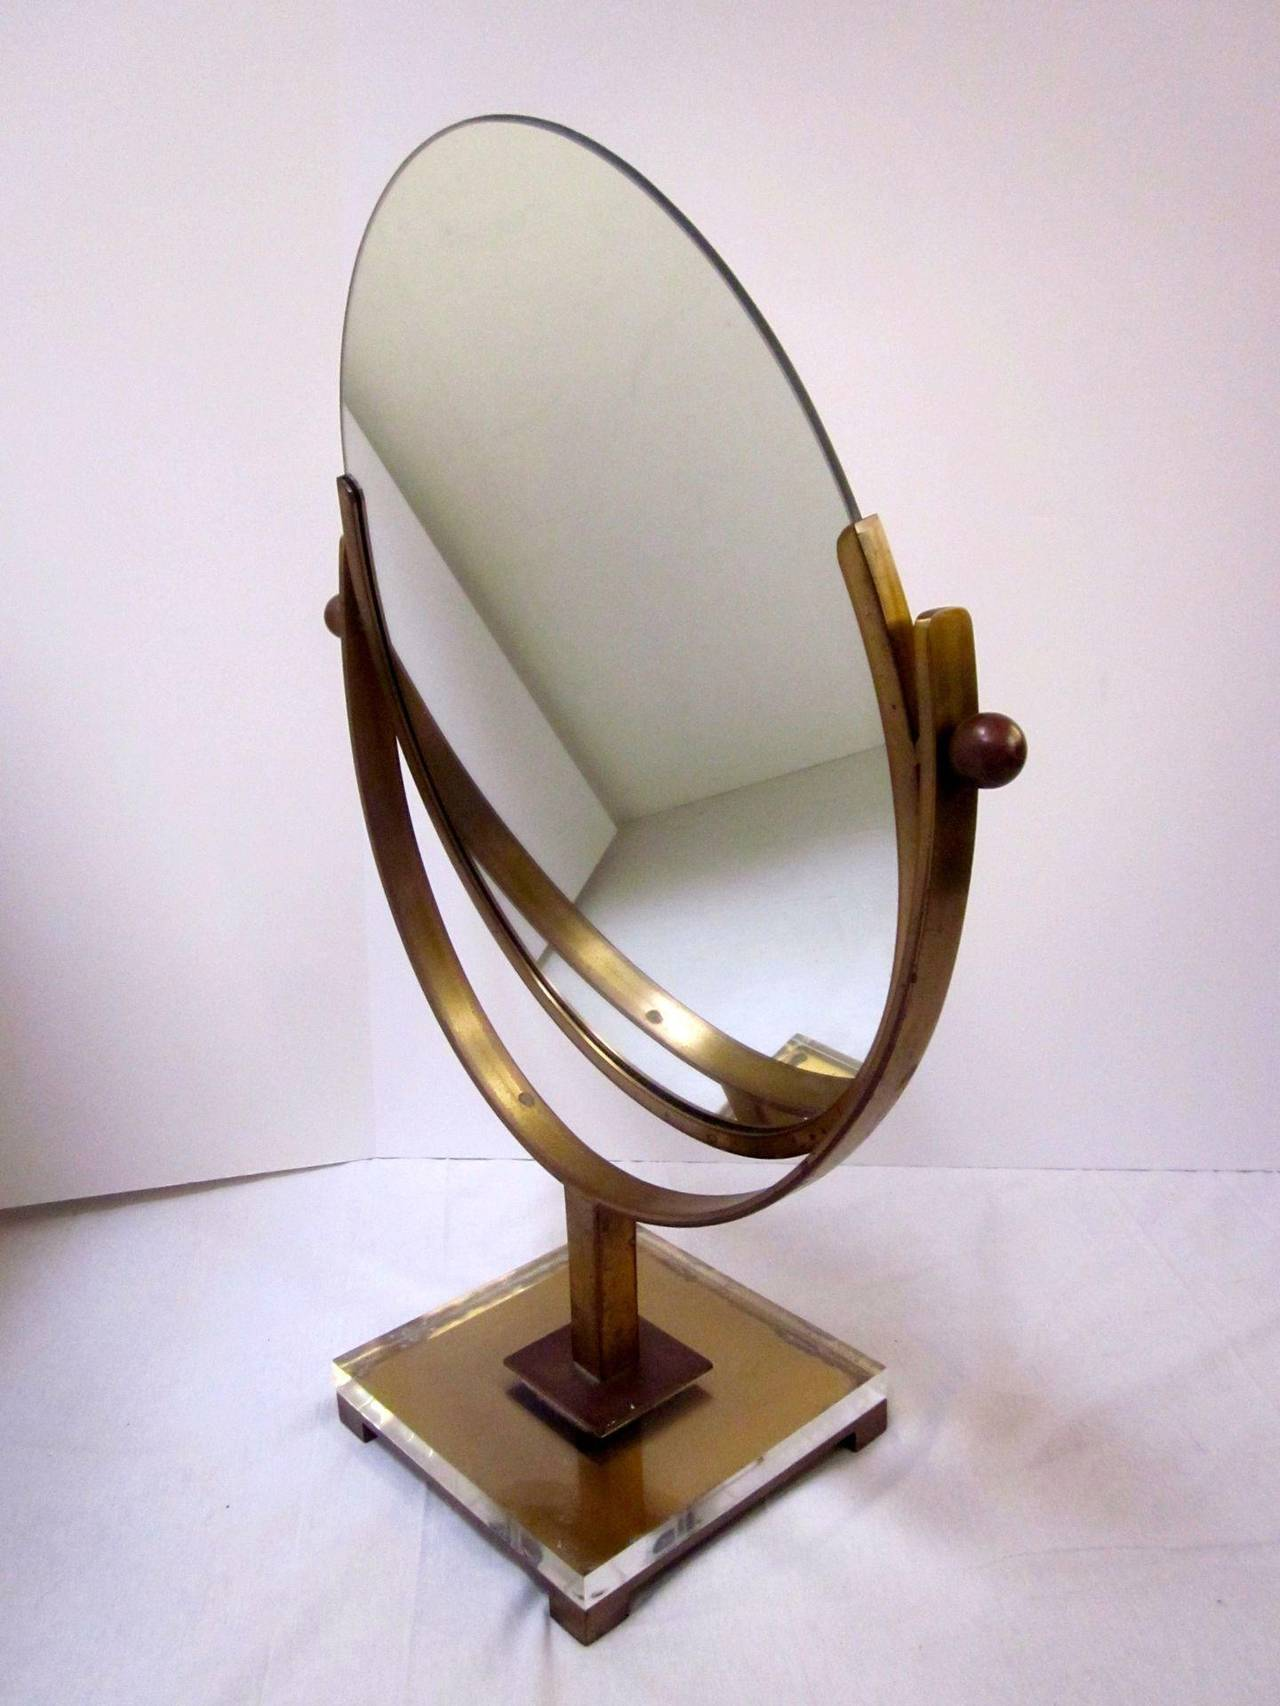 Double Sided Vanity Mirror By Charles Hollis Jones In Brass And